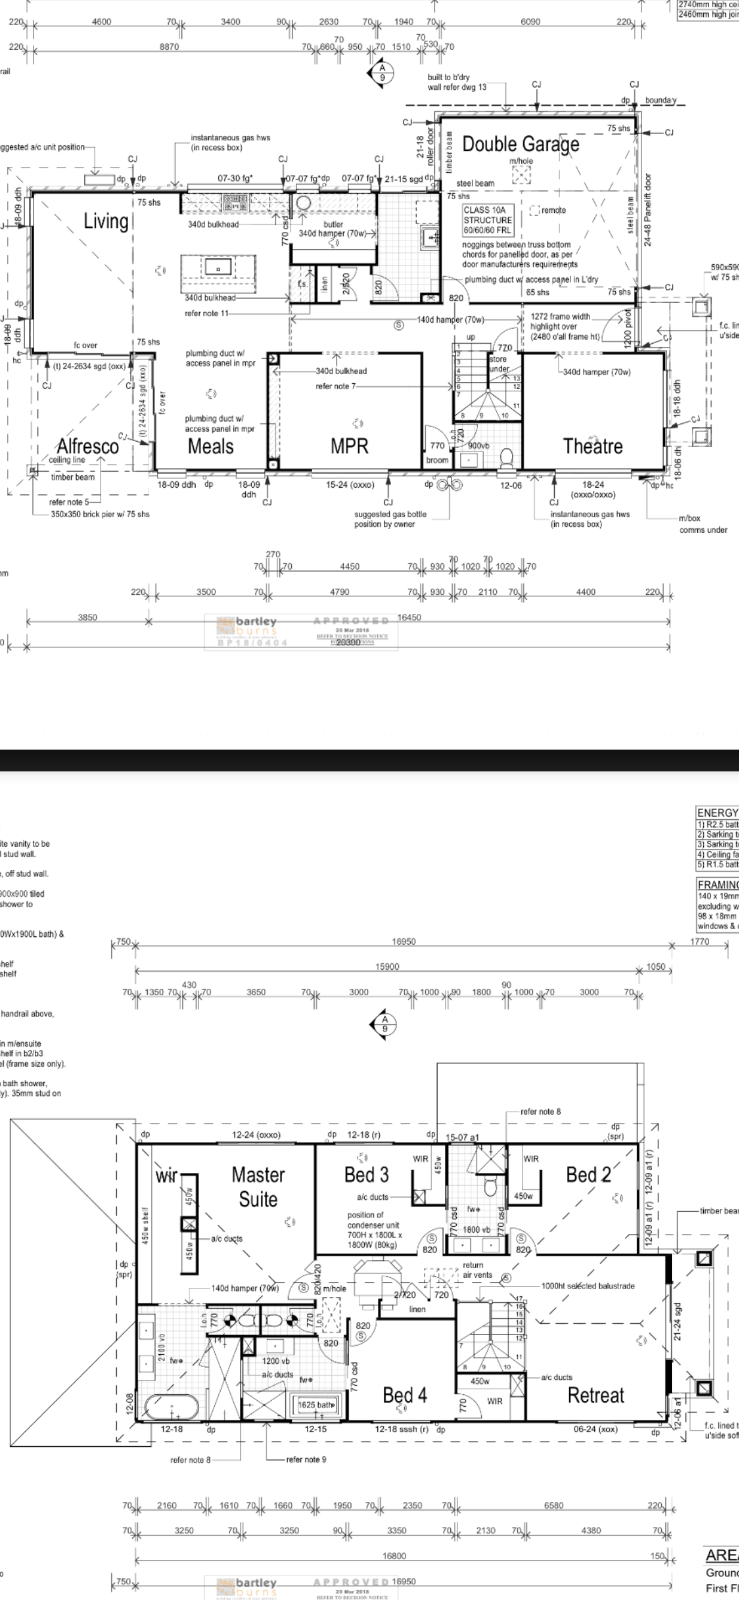 View Topic Ausbuild Newbury 39 Altitude Thornlands Home 36si Wiring Diagram Planlike Add A Comment Pin To Ideaboard Share